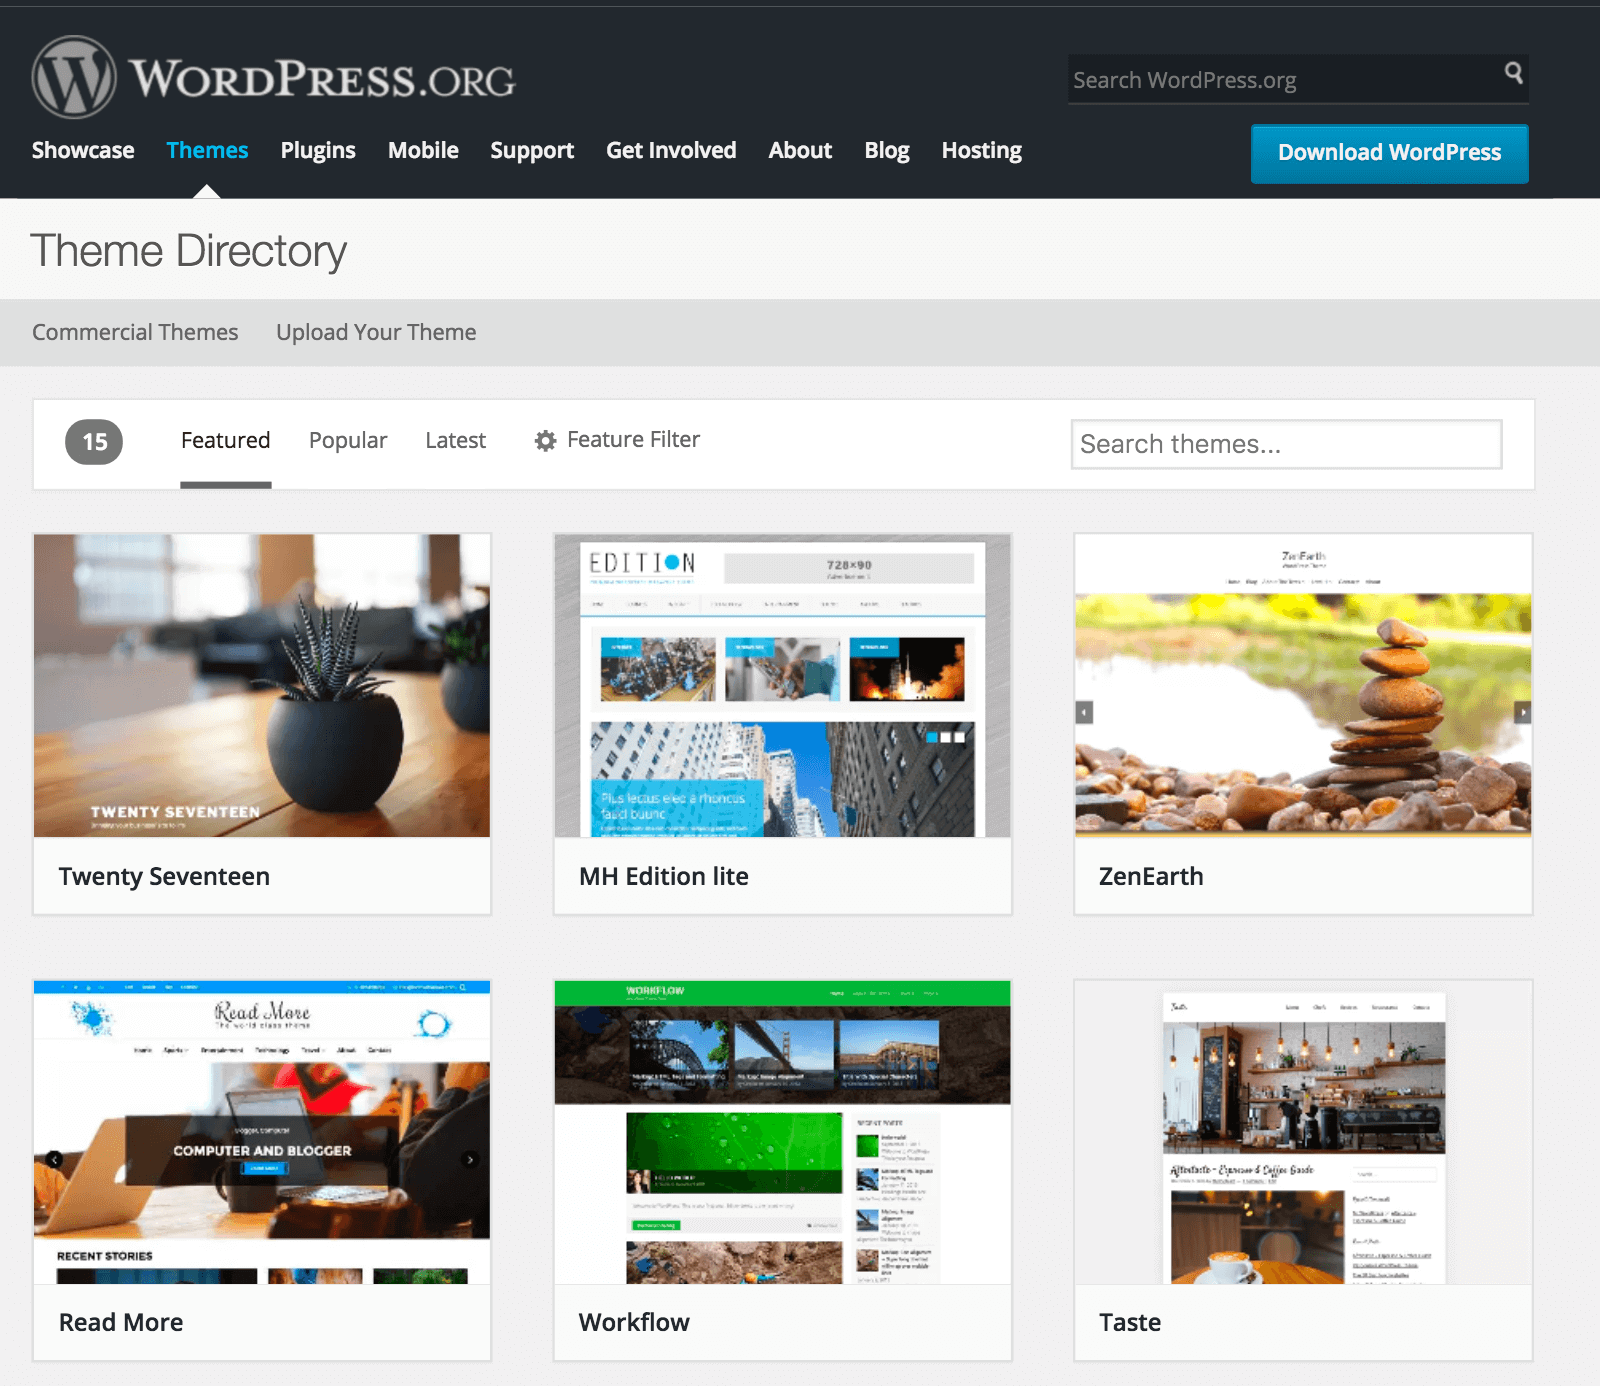 Official WordPress Theme Directory - BlogTipsTricks